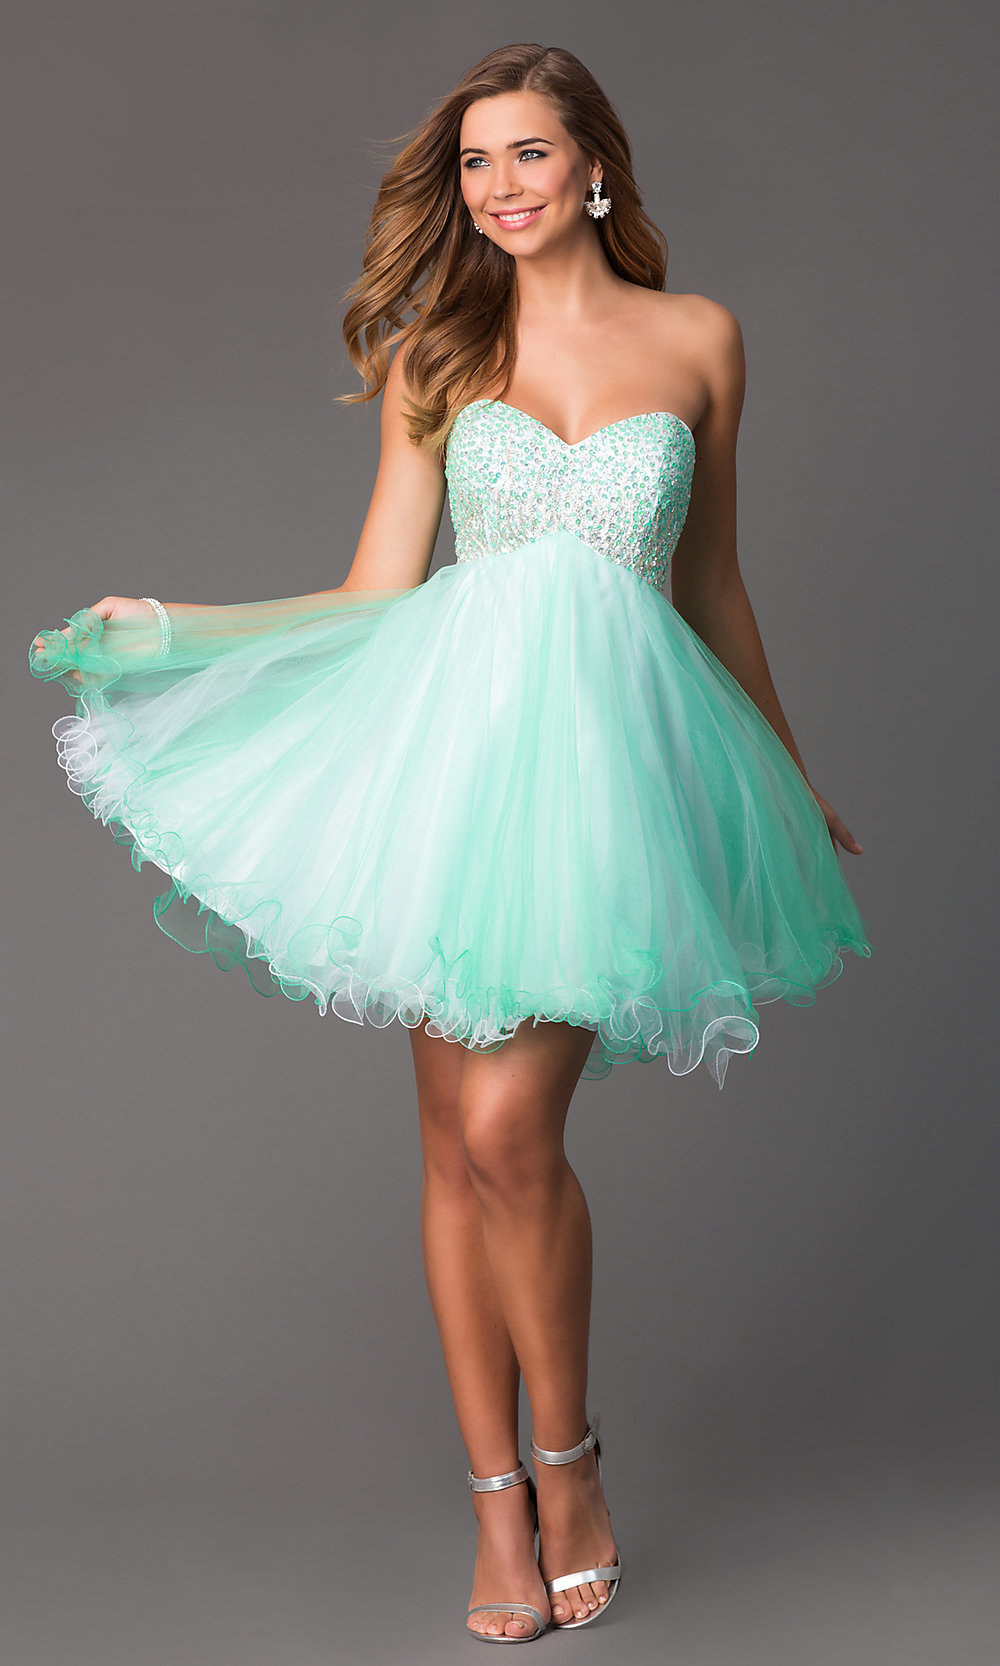 Short Strapless Prom Dress- Corset Back Party Dress